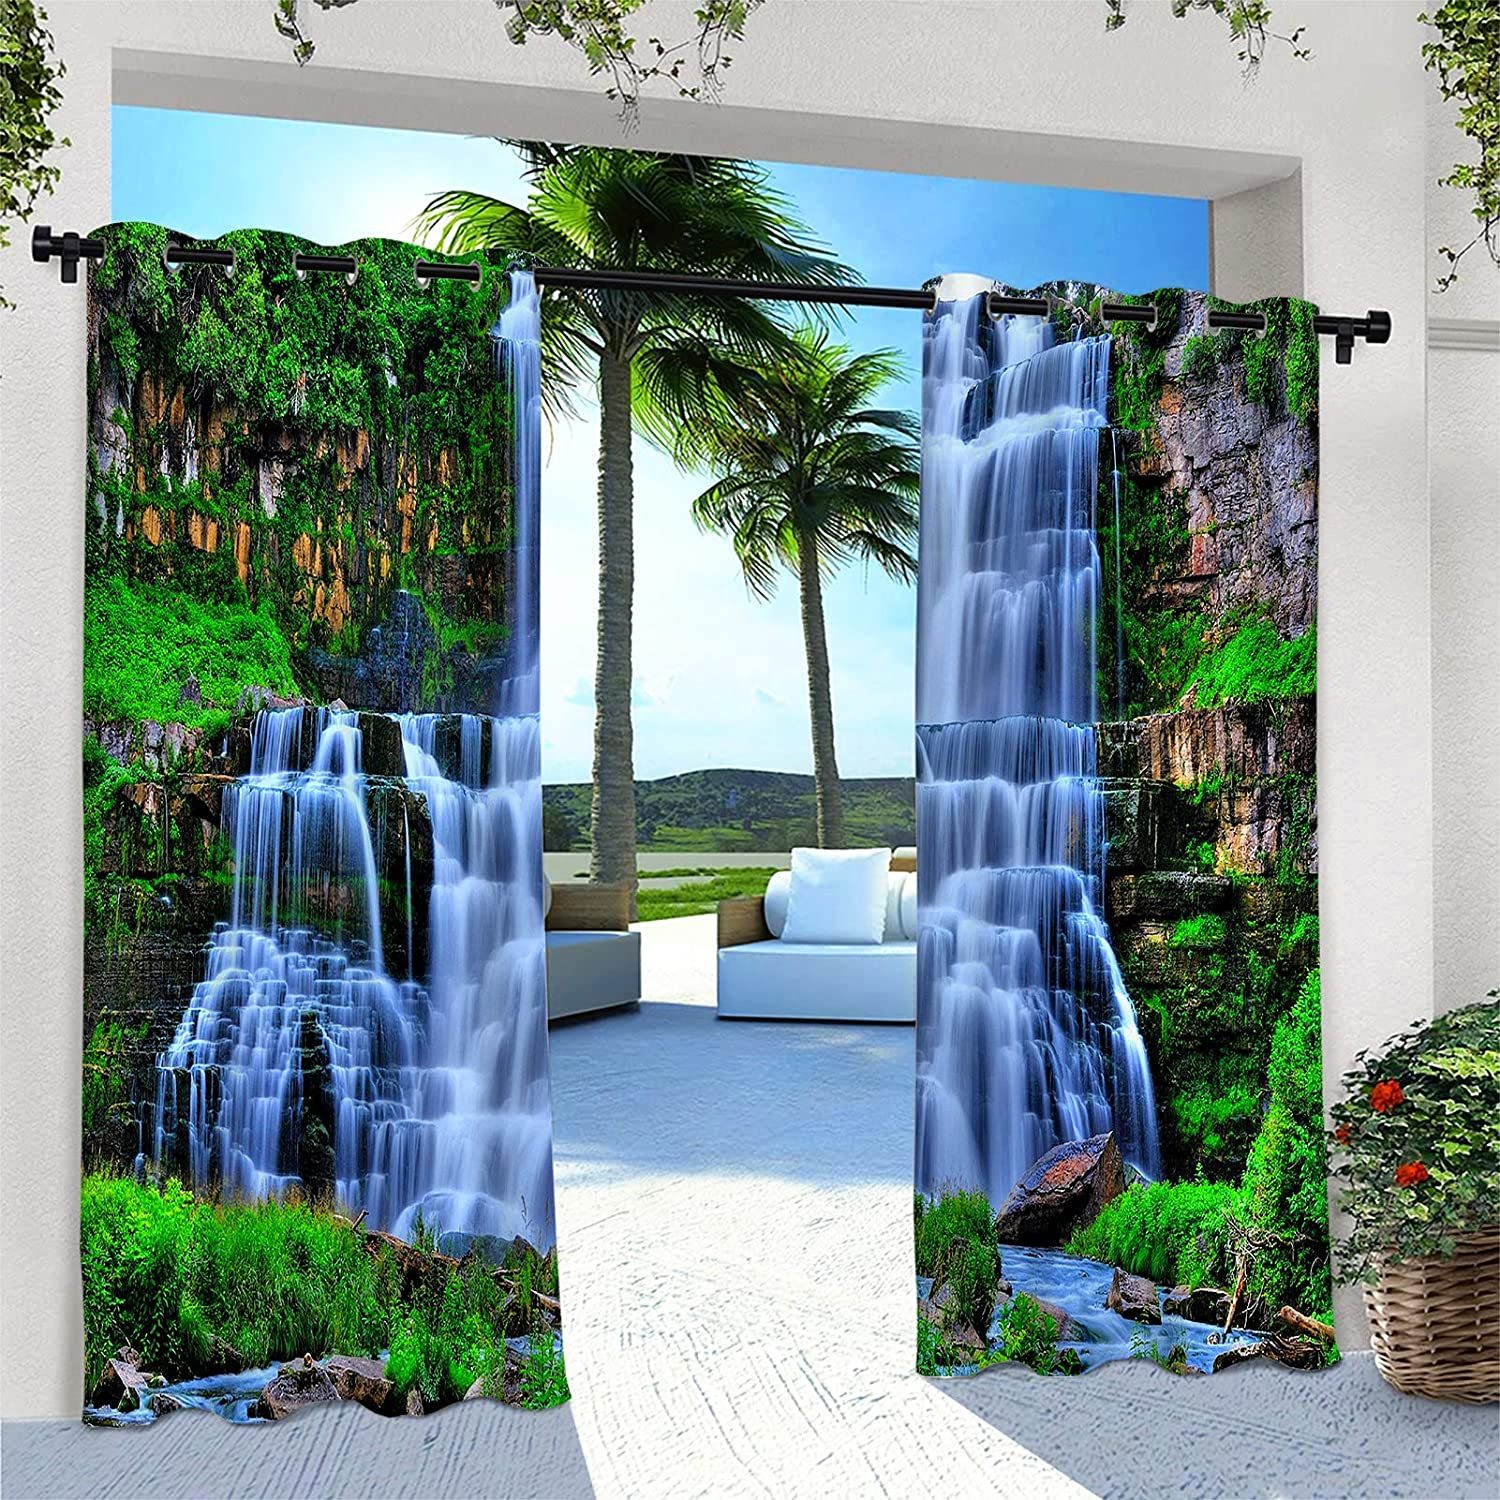 ANHOPE Outdoor Curtains Waterproof Groment Animer and price Cheap SALE Start revision Curtain Window Panel